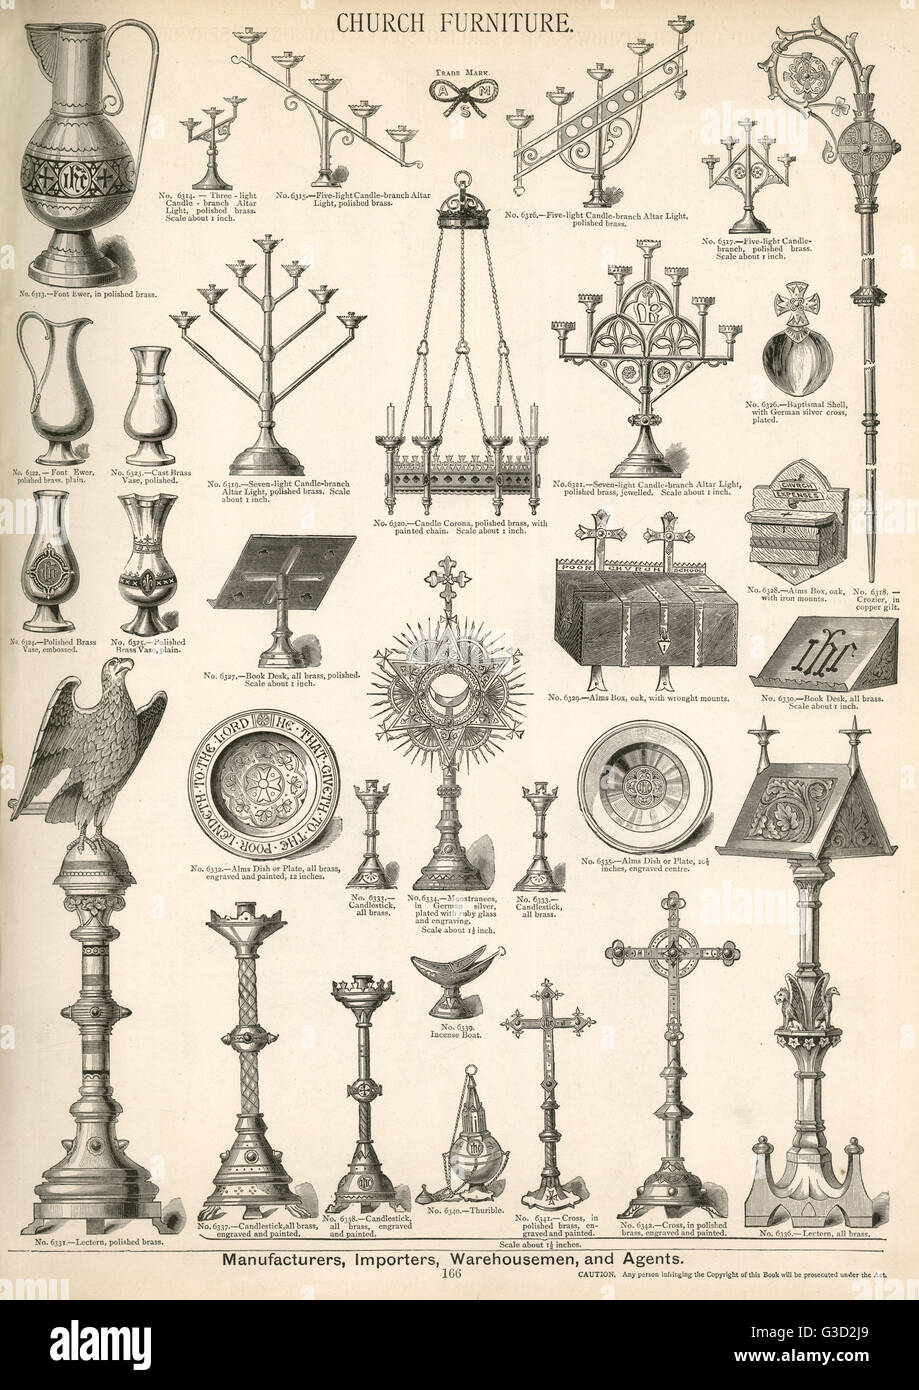 Church Furniture, Plate 166, showing candle holders, candlesticks, lecterns, boxes, vases and other items.      - Stock Image